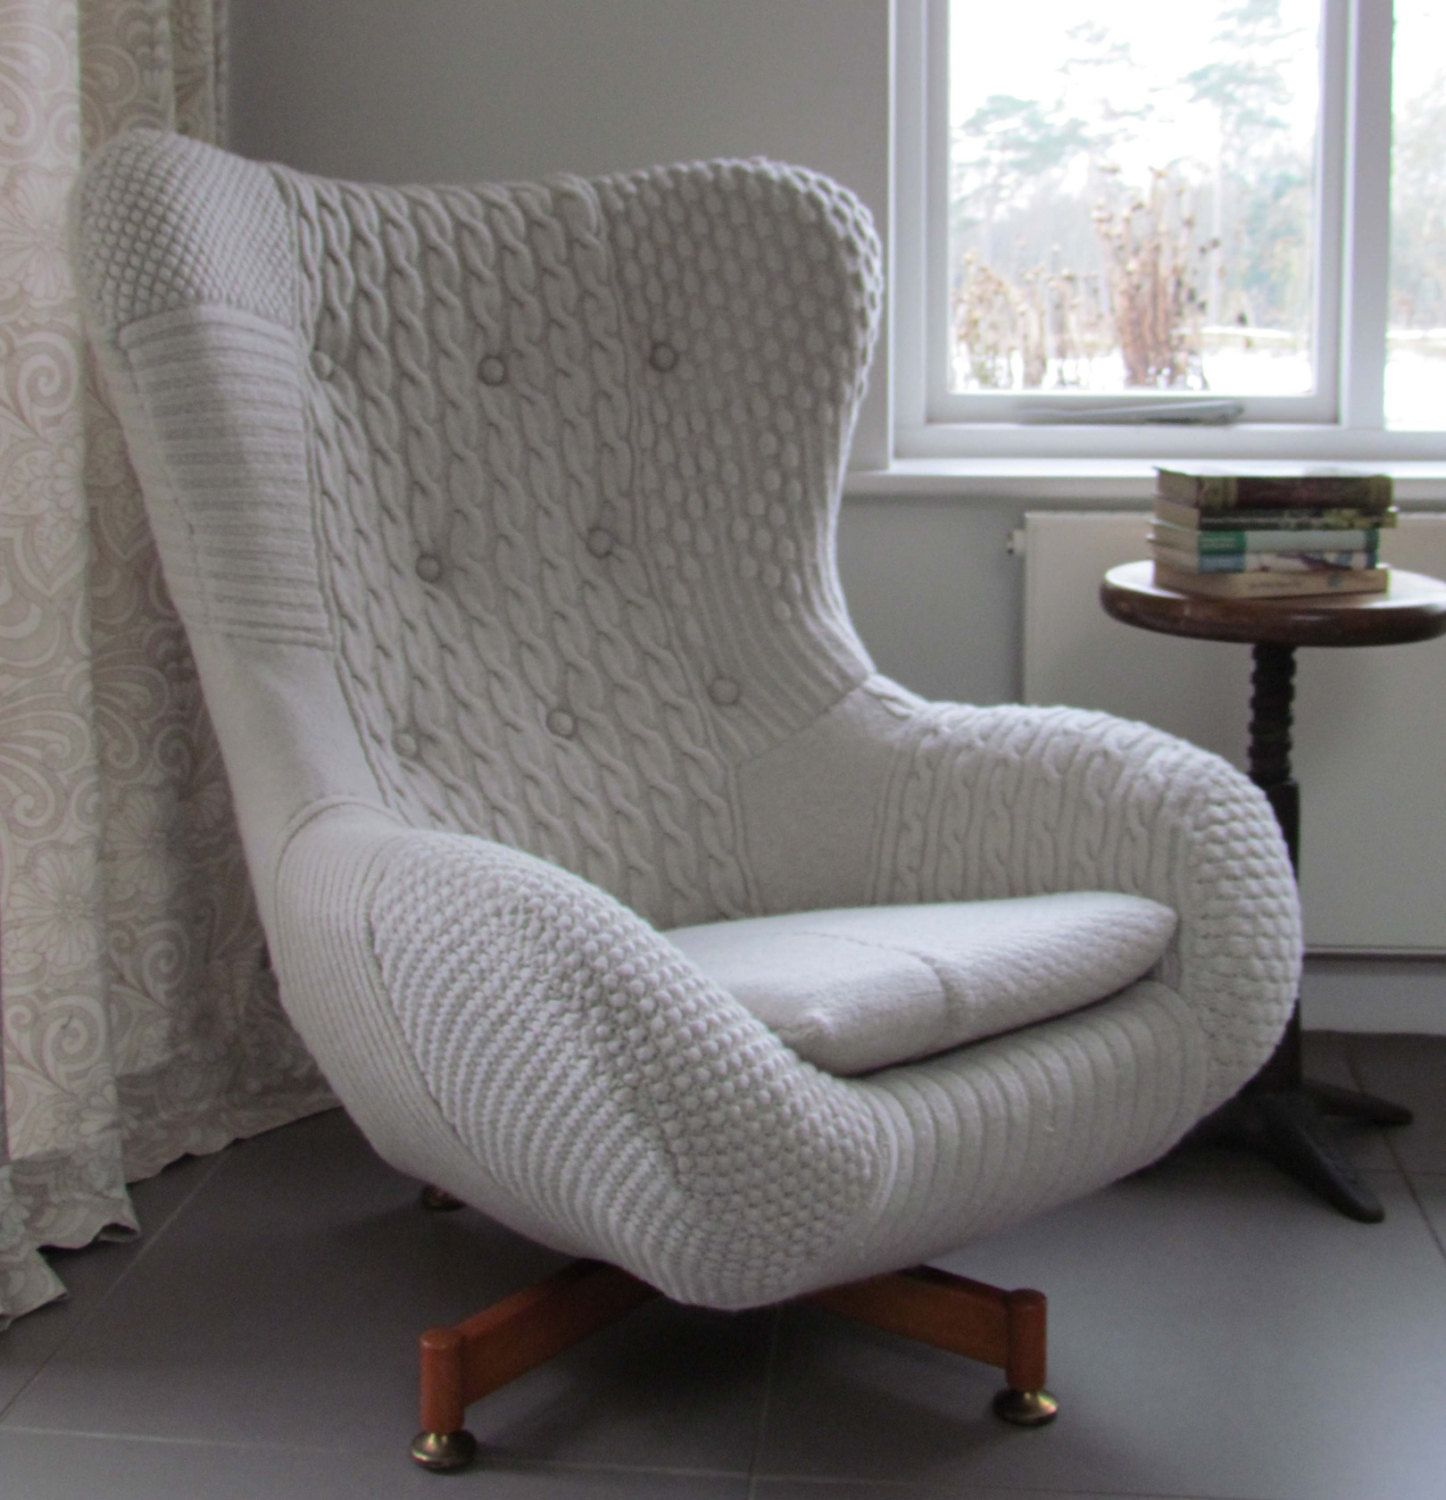 Bevis Patchwork Knit Chair By MelaniePorterDesign On Etsy